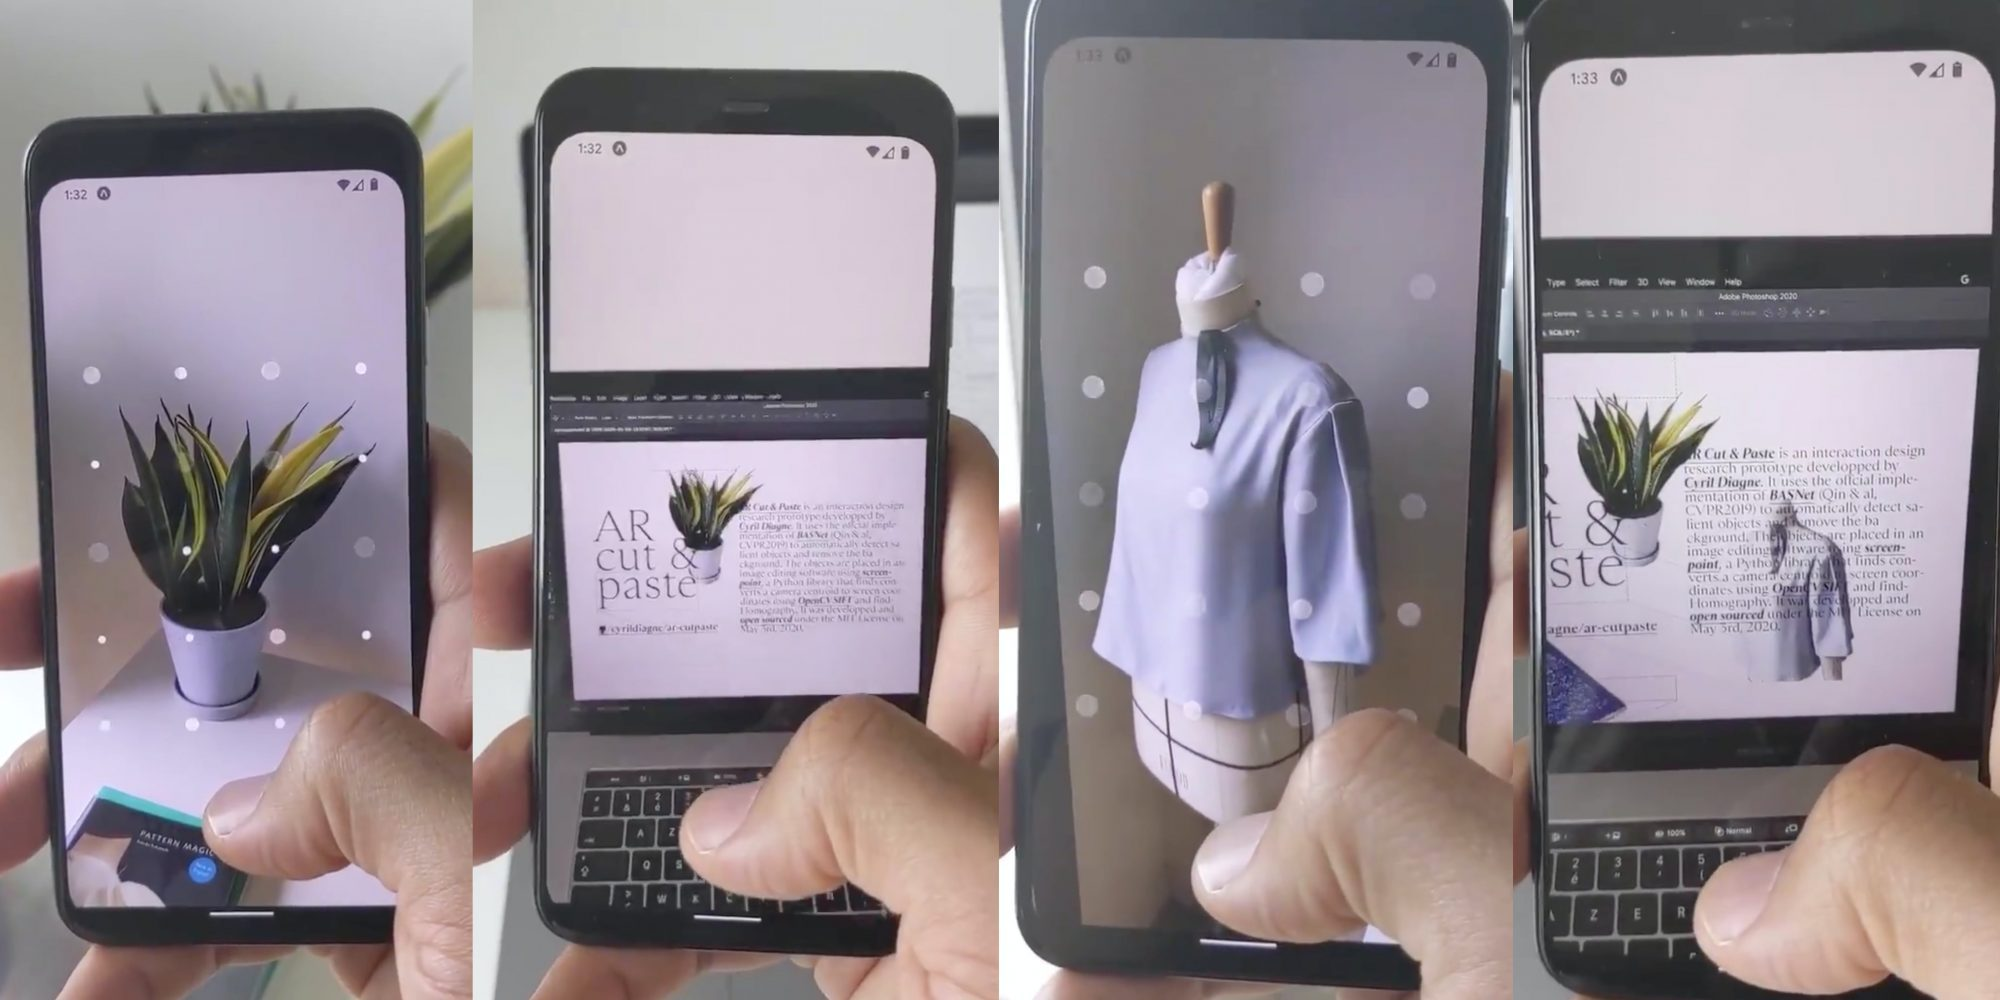 How to Copy and Paste Real-World Objects in AR Using iPhone and Android